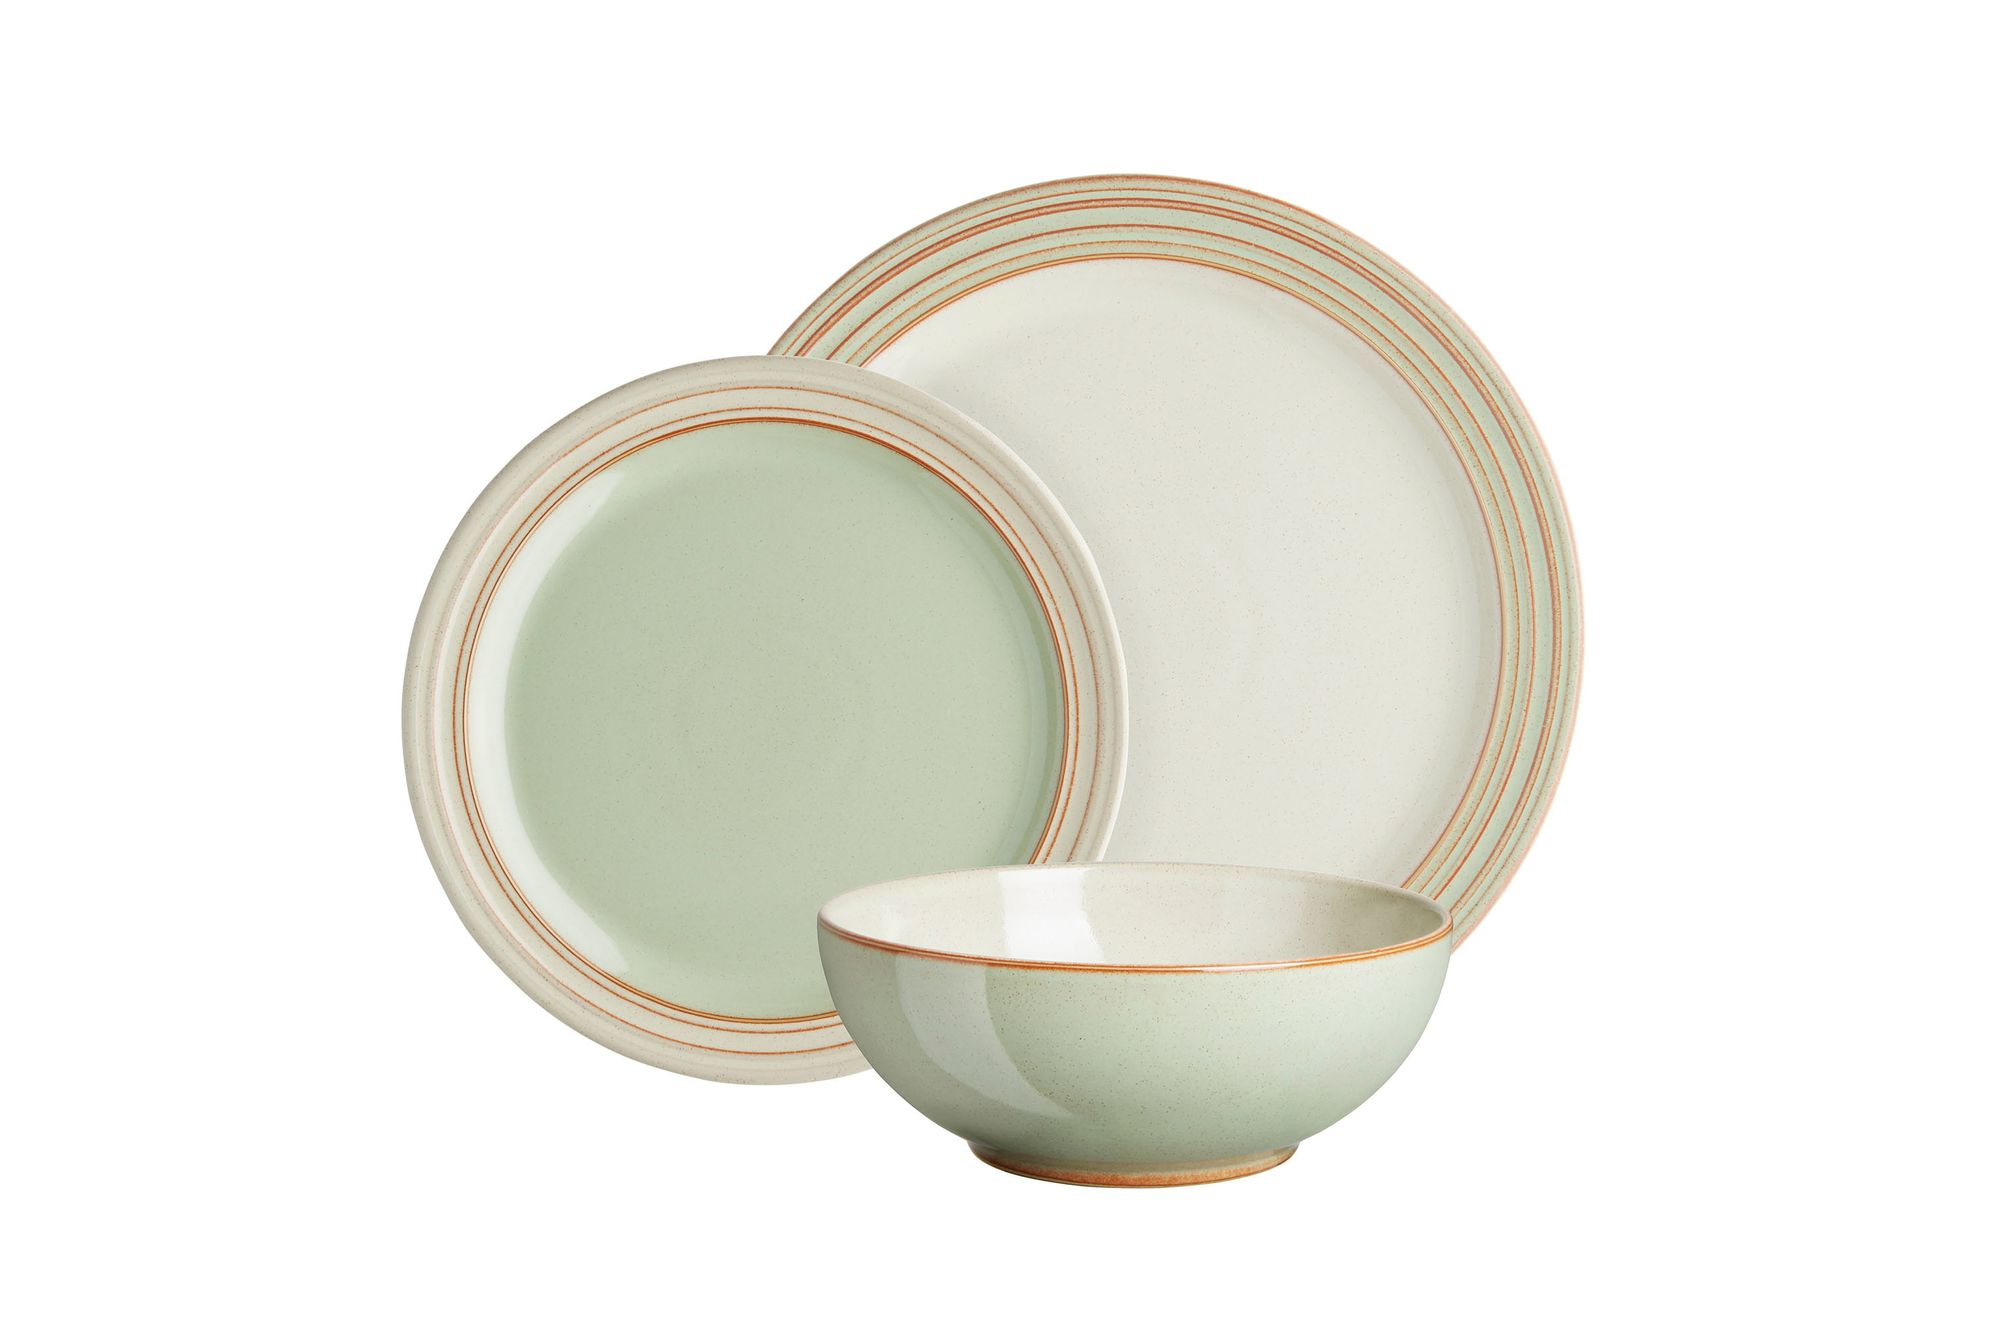 Denby Heritage Orchard 12 Piece Set 4 x Dinner Plate, 4 x Medium Plate, 4 x Soup /Cereal Bowl thumb 2